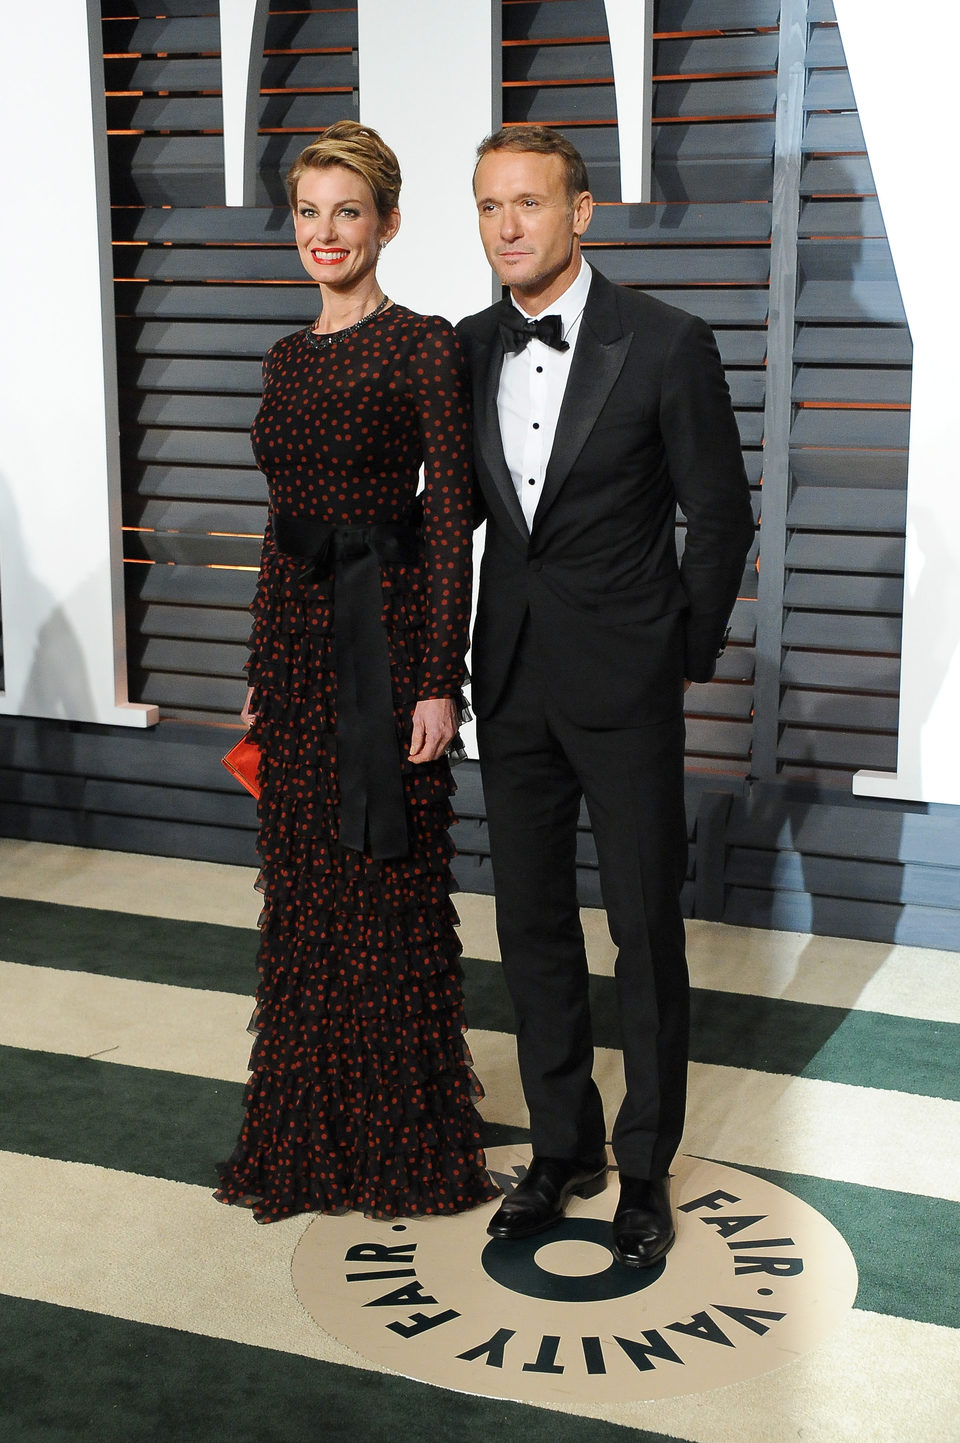 Tim McGraw and Faith Hill in the Oscar 2015 red carpet